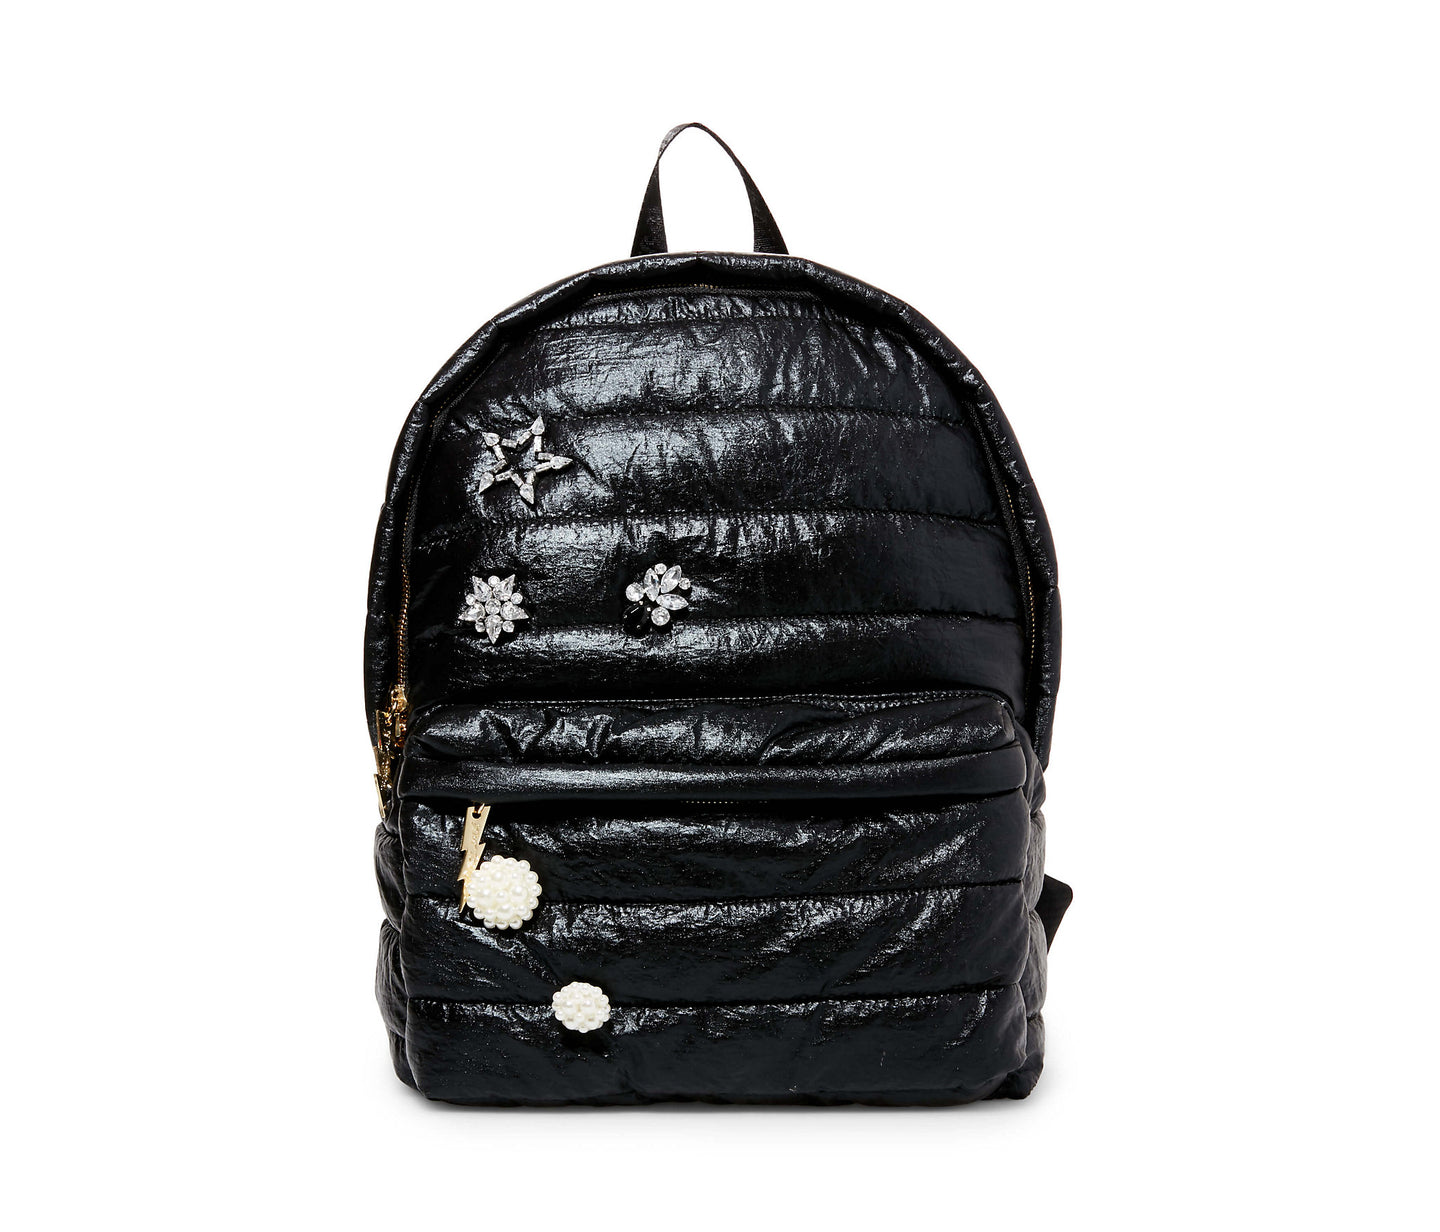 PICTURE PUFF-ECT BETSEY BACKPACK BLACK - HANDBAGS - Betsey Johnson